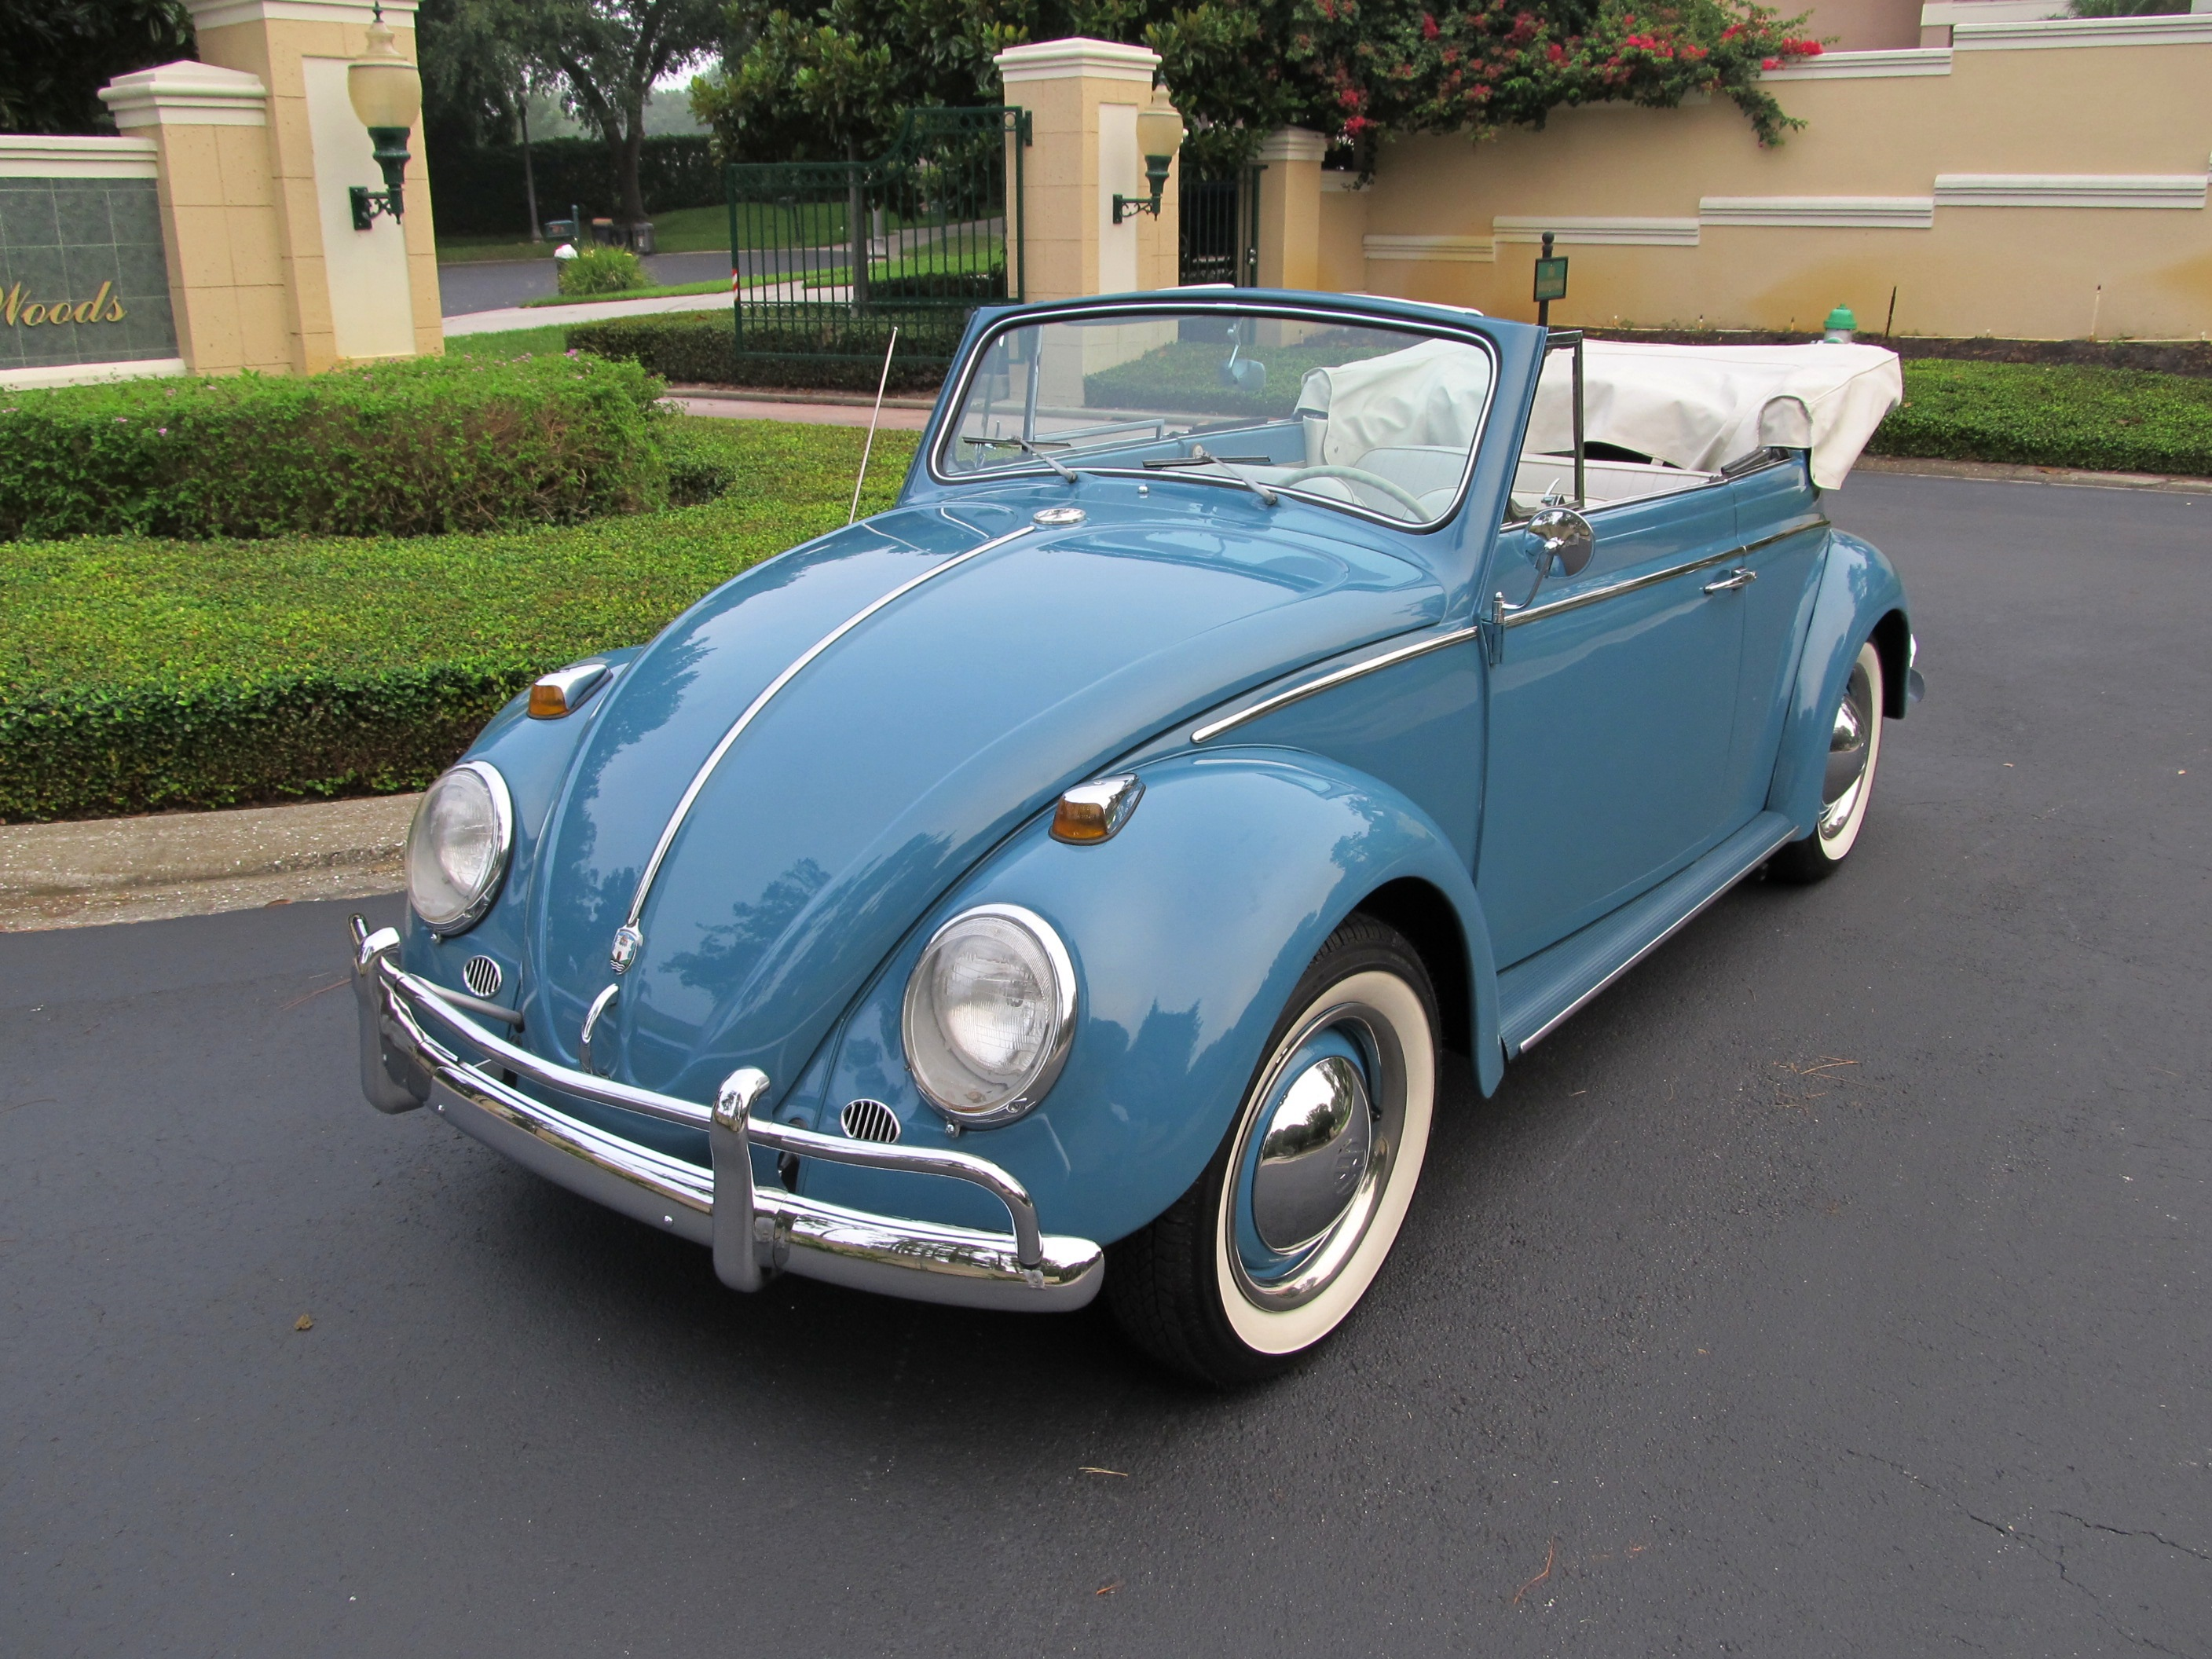 1963 Volkswagen Beetle Convertible-SOLD!! - Vantage Sports ...